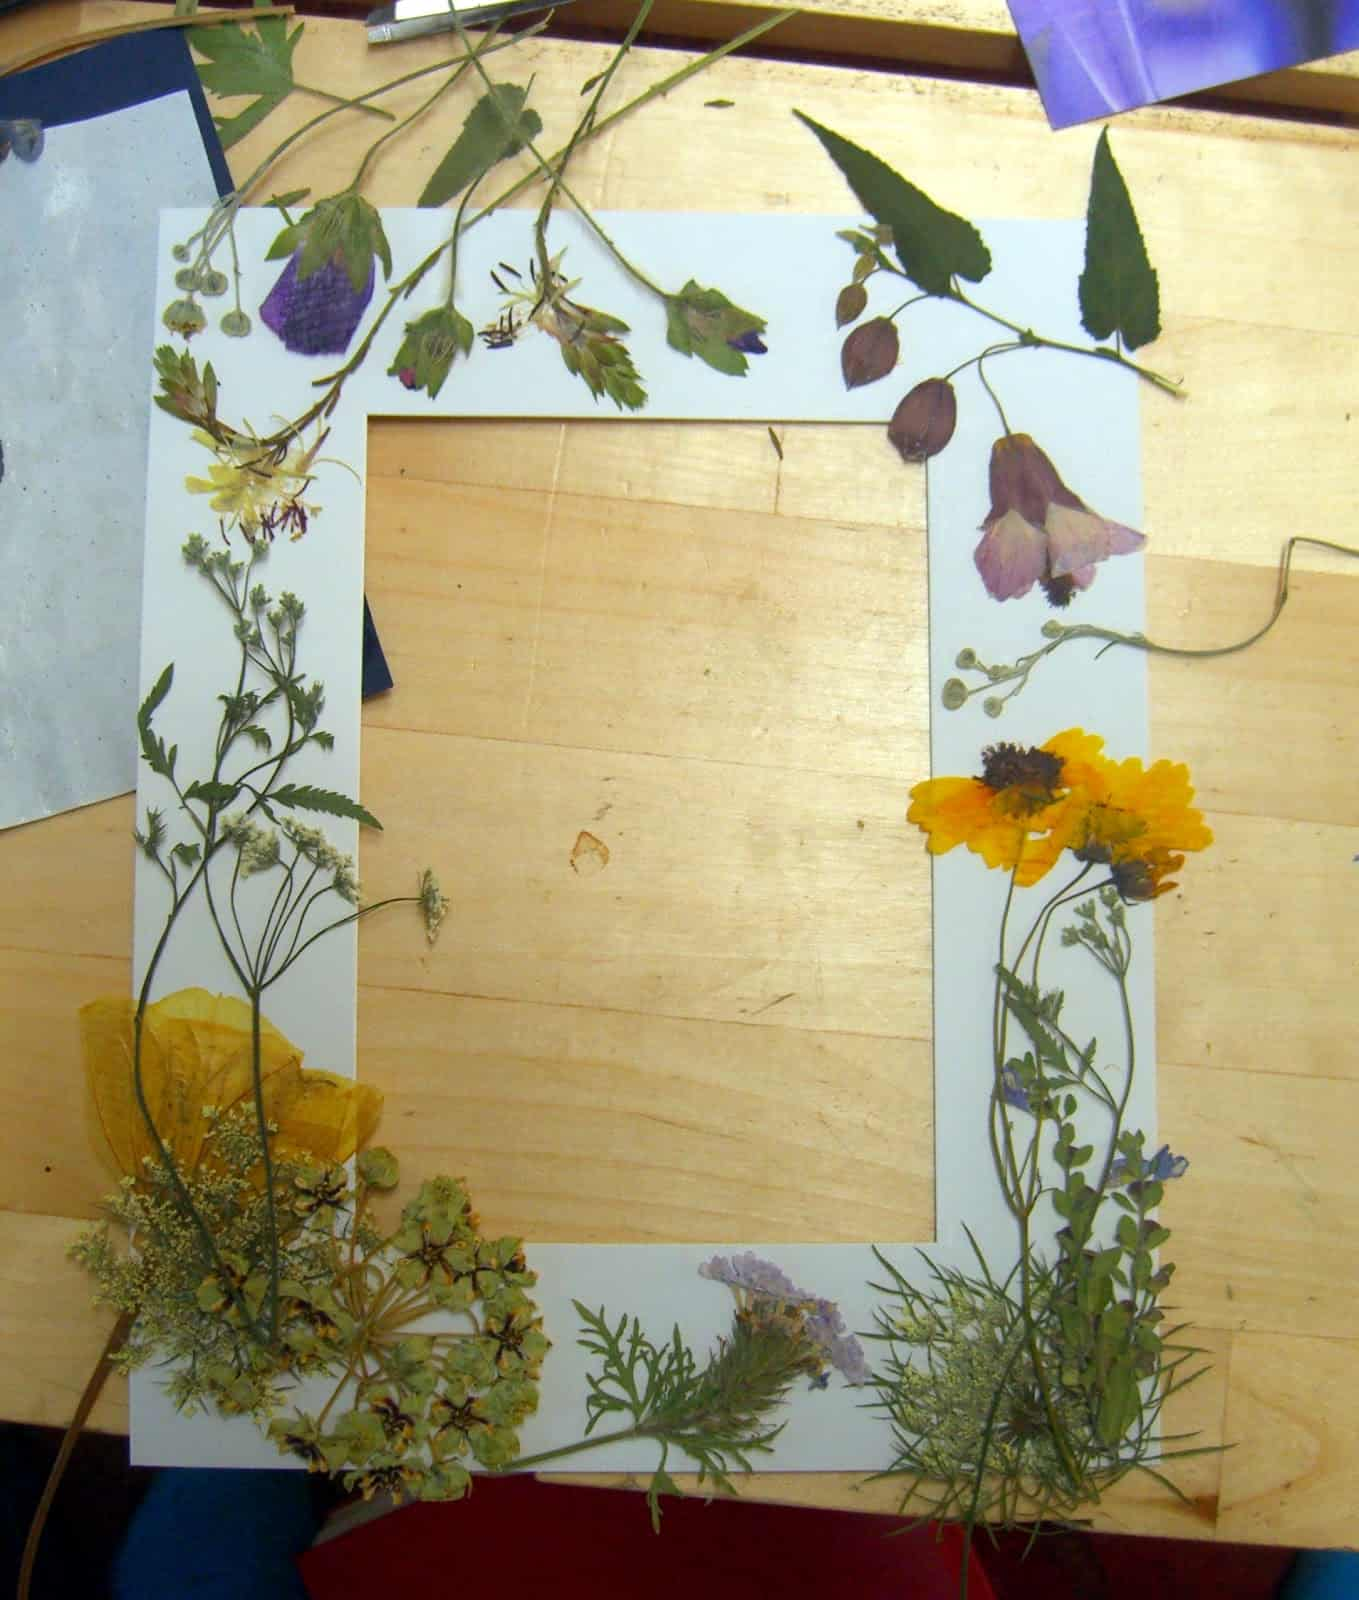 Dried flower frame border insert